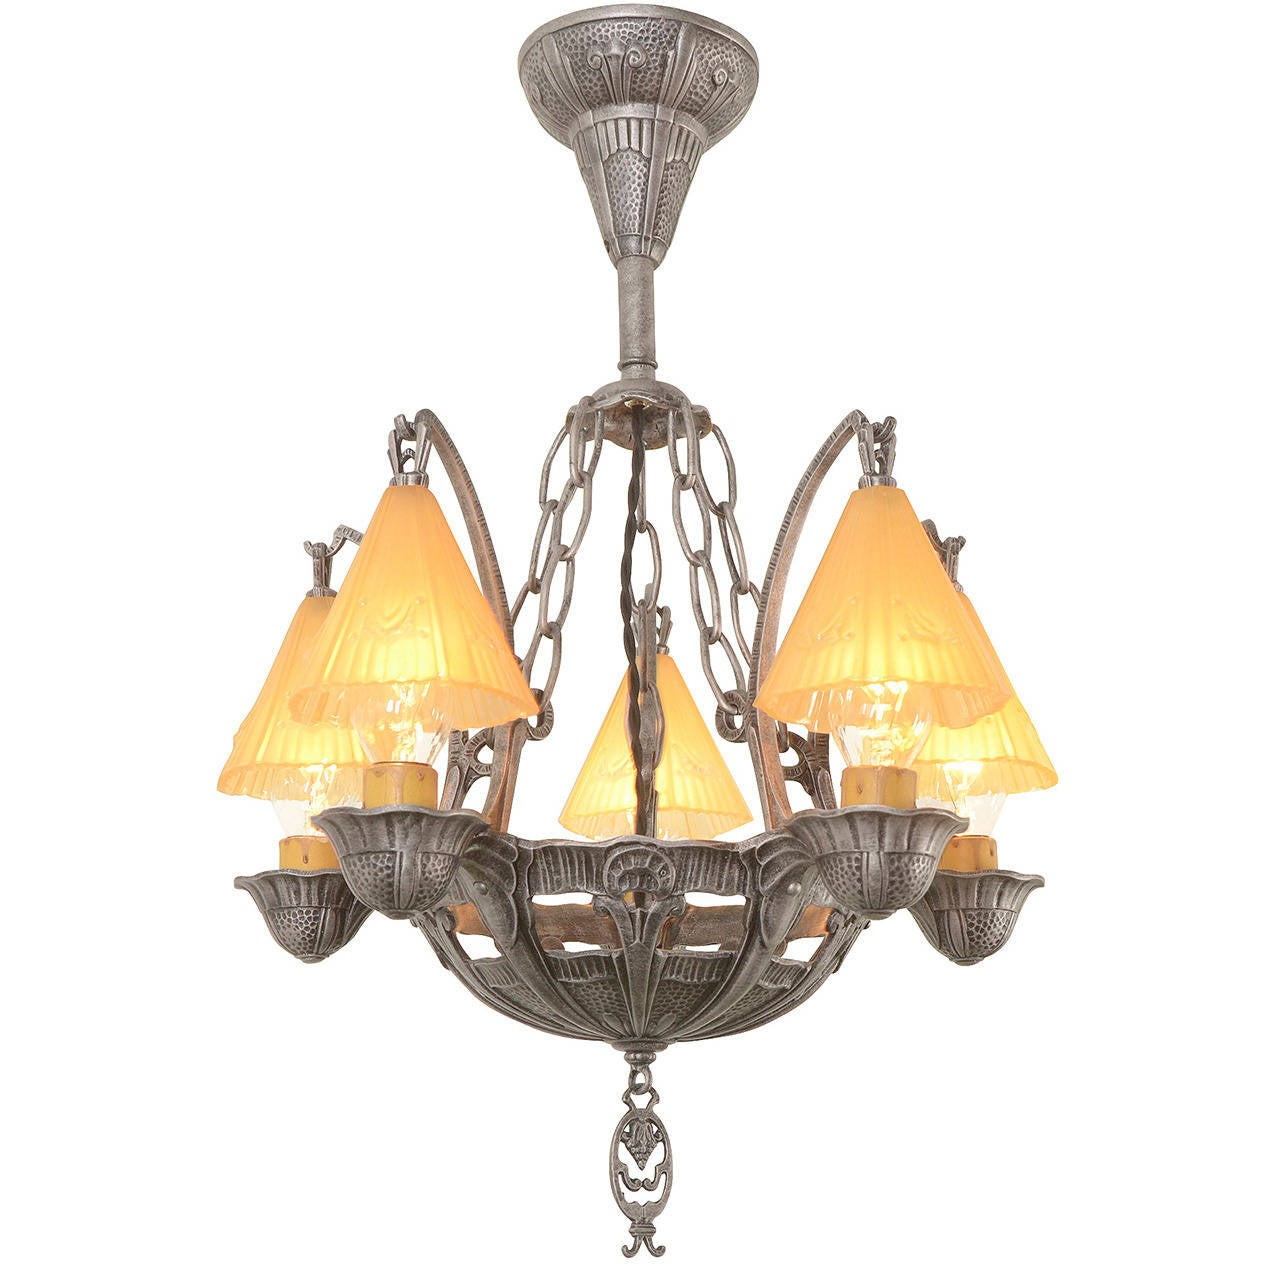 Romance Revival Semi Flush Chandelier With Smoke Bells